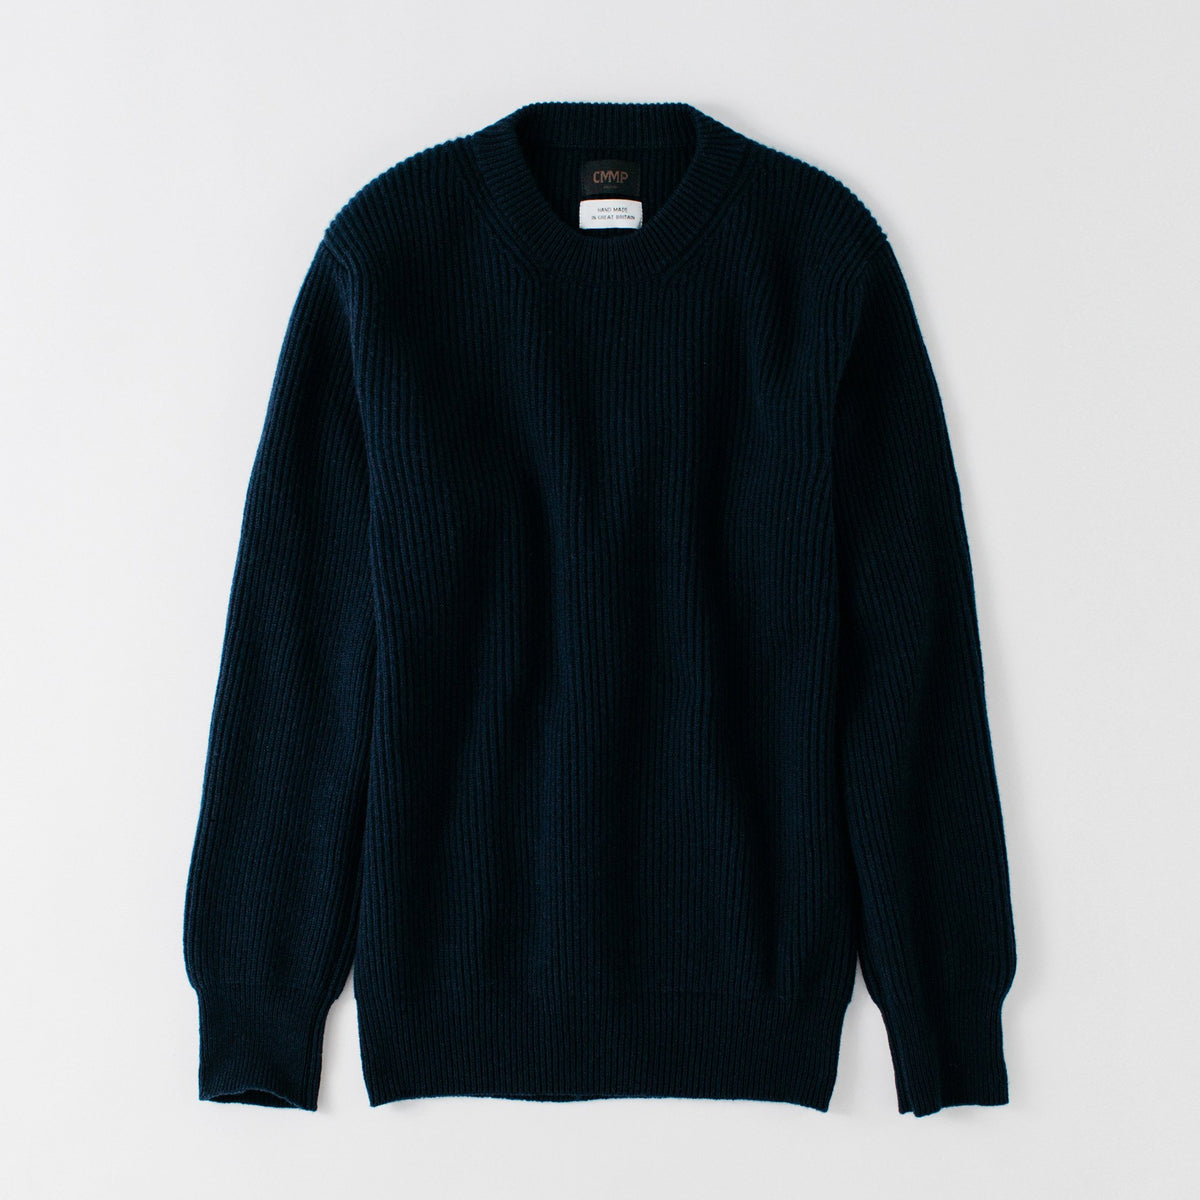 Smuggler Cashmere Crew Sweater - Nero Navy